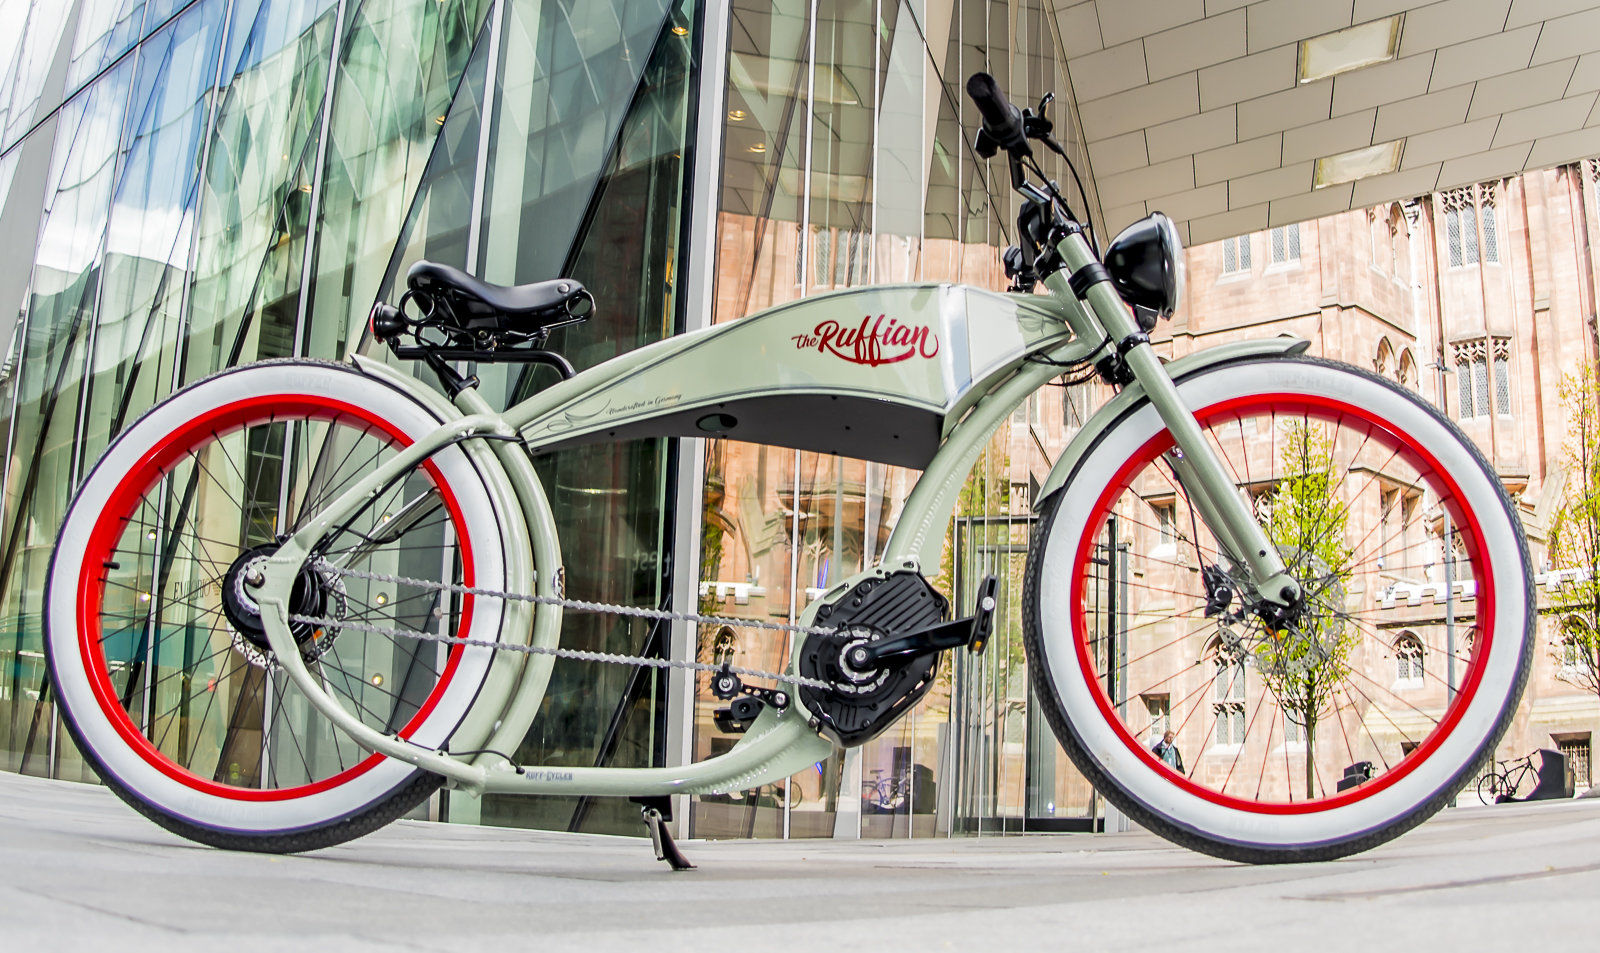 Ruffian e-bike at Spinningfields, Manchester